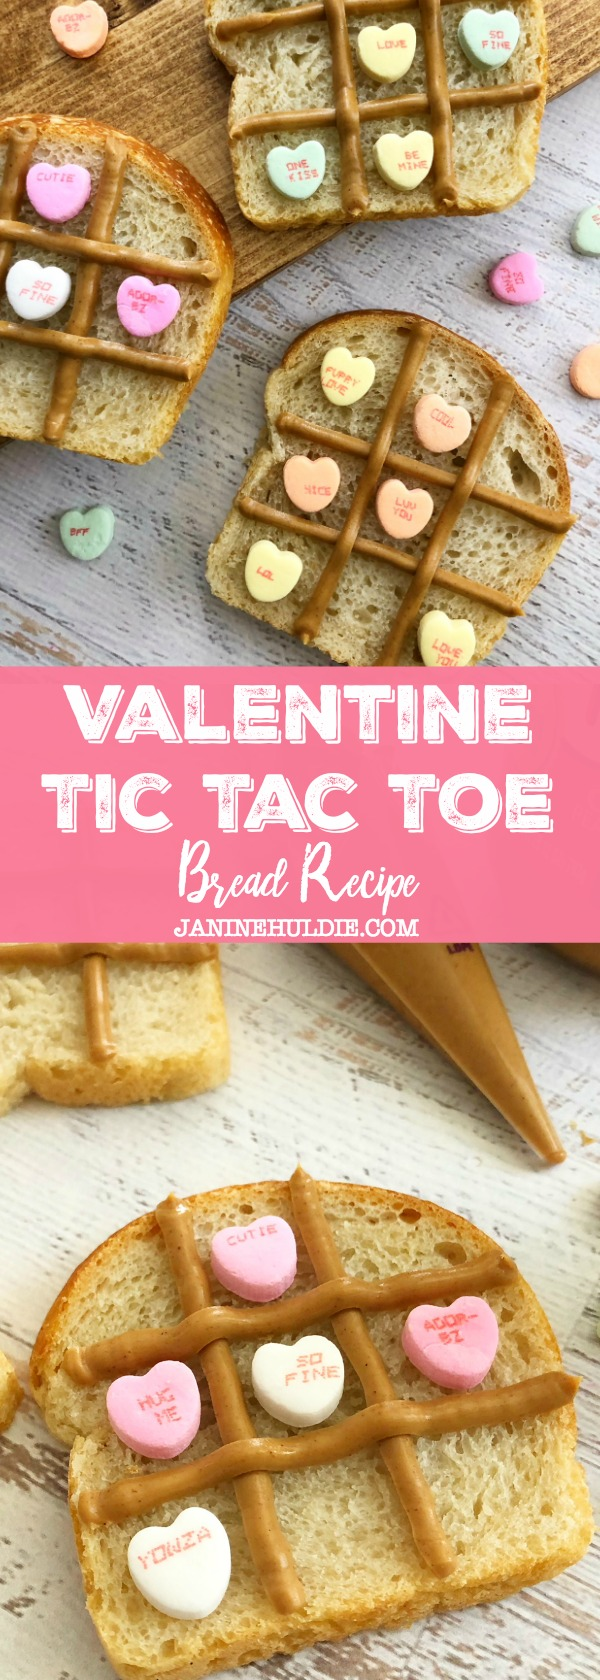 Valentine Tic Tac Toe Bread, This Mom's Confessions